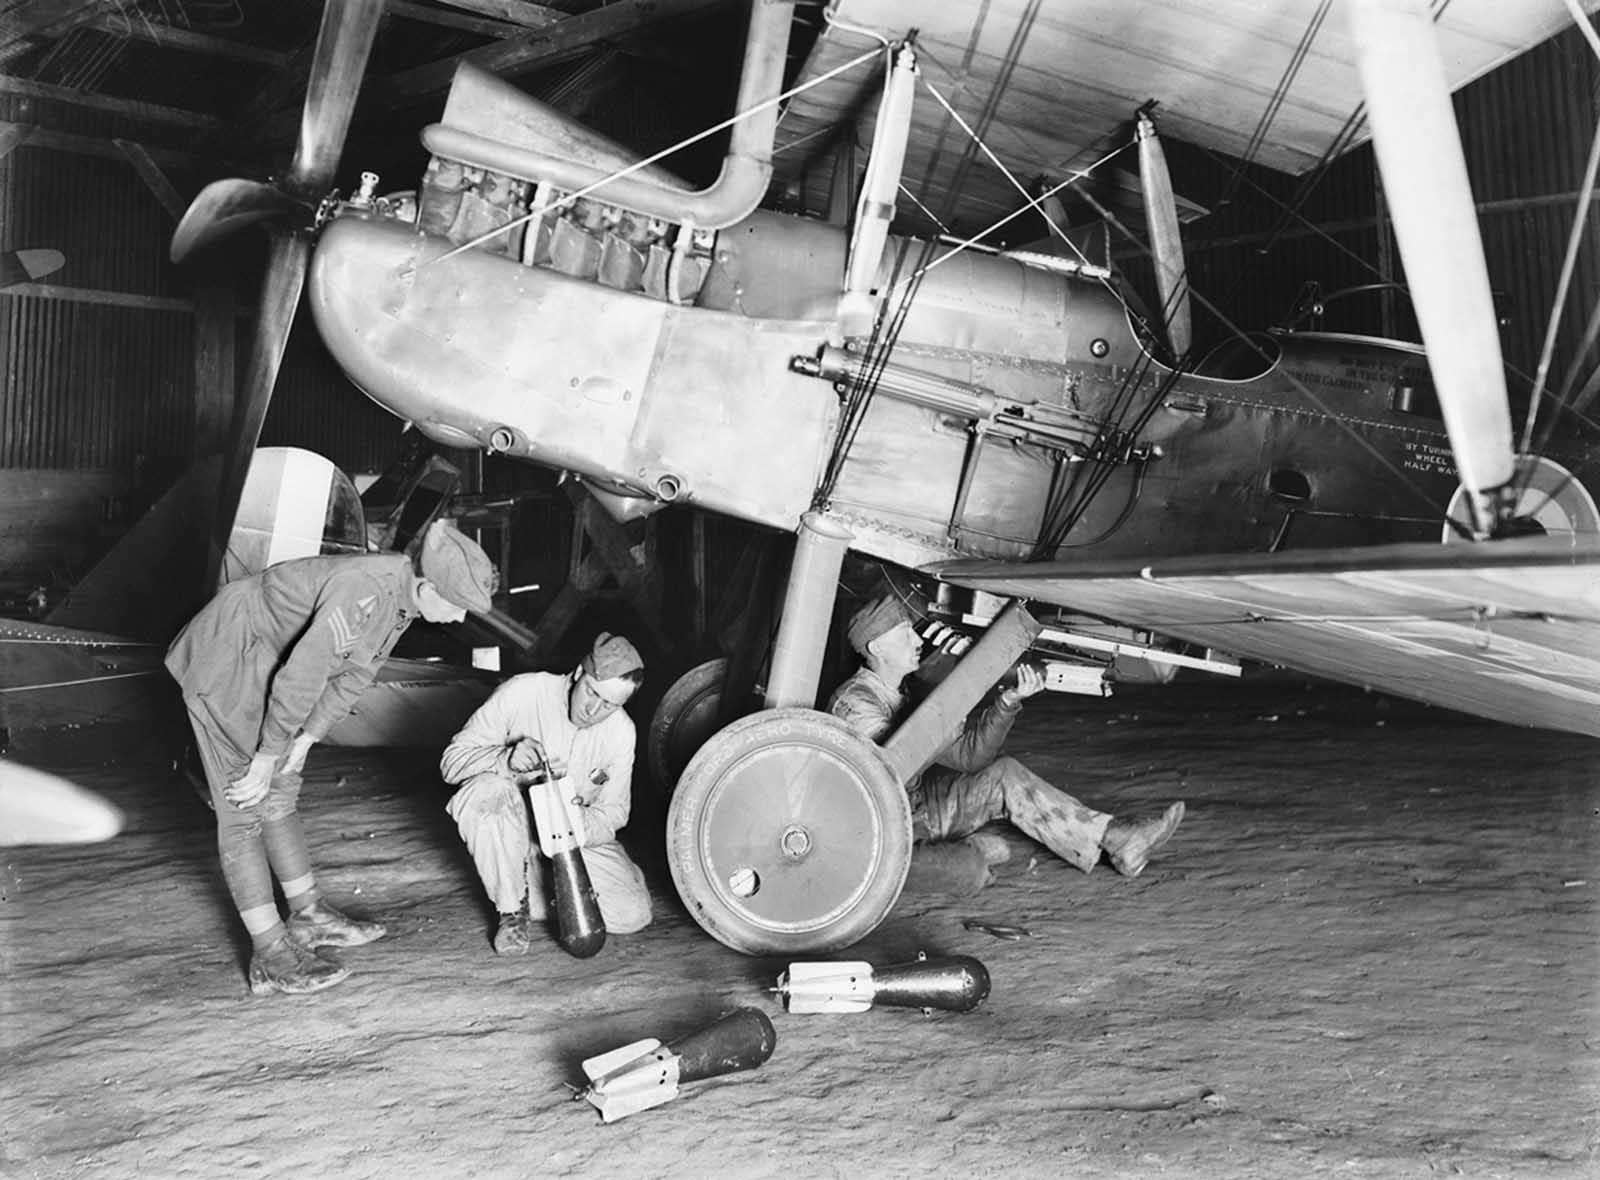 An unidentified member of the 69th Australian Squadron, later designated No. 3 Australian Flying Corps, fixes incendiary bombs to an R.E.8 aircraft at the AFC airfield north west of Arras. The entire squadron was operating from Savy (near Arras) on October 22, 1917, having arrived there on September 9, after crossing the channel from the UK.